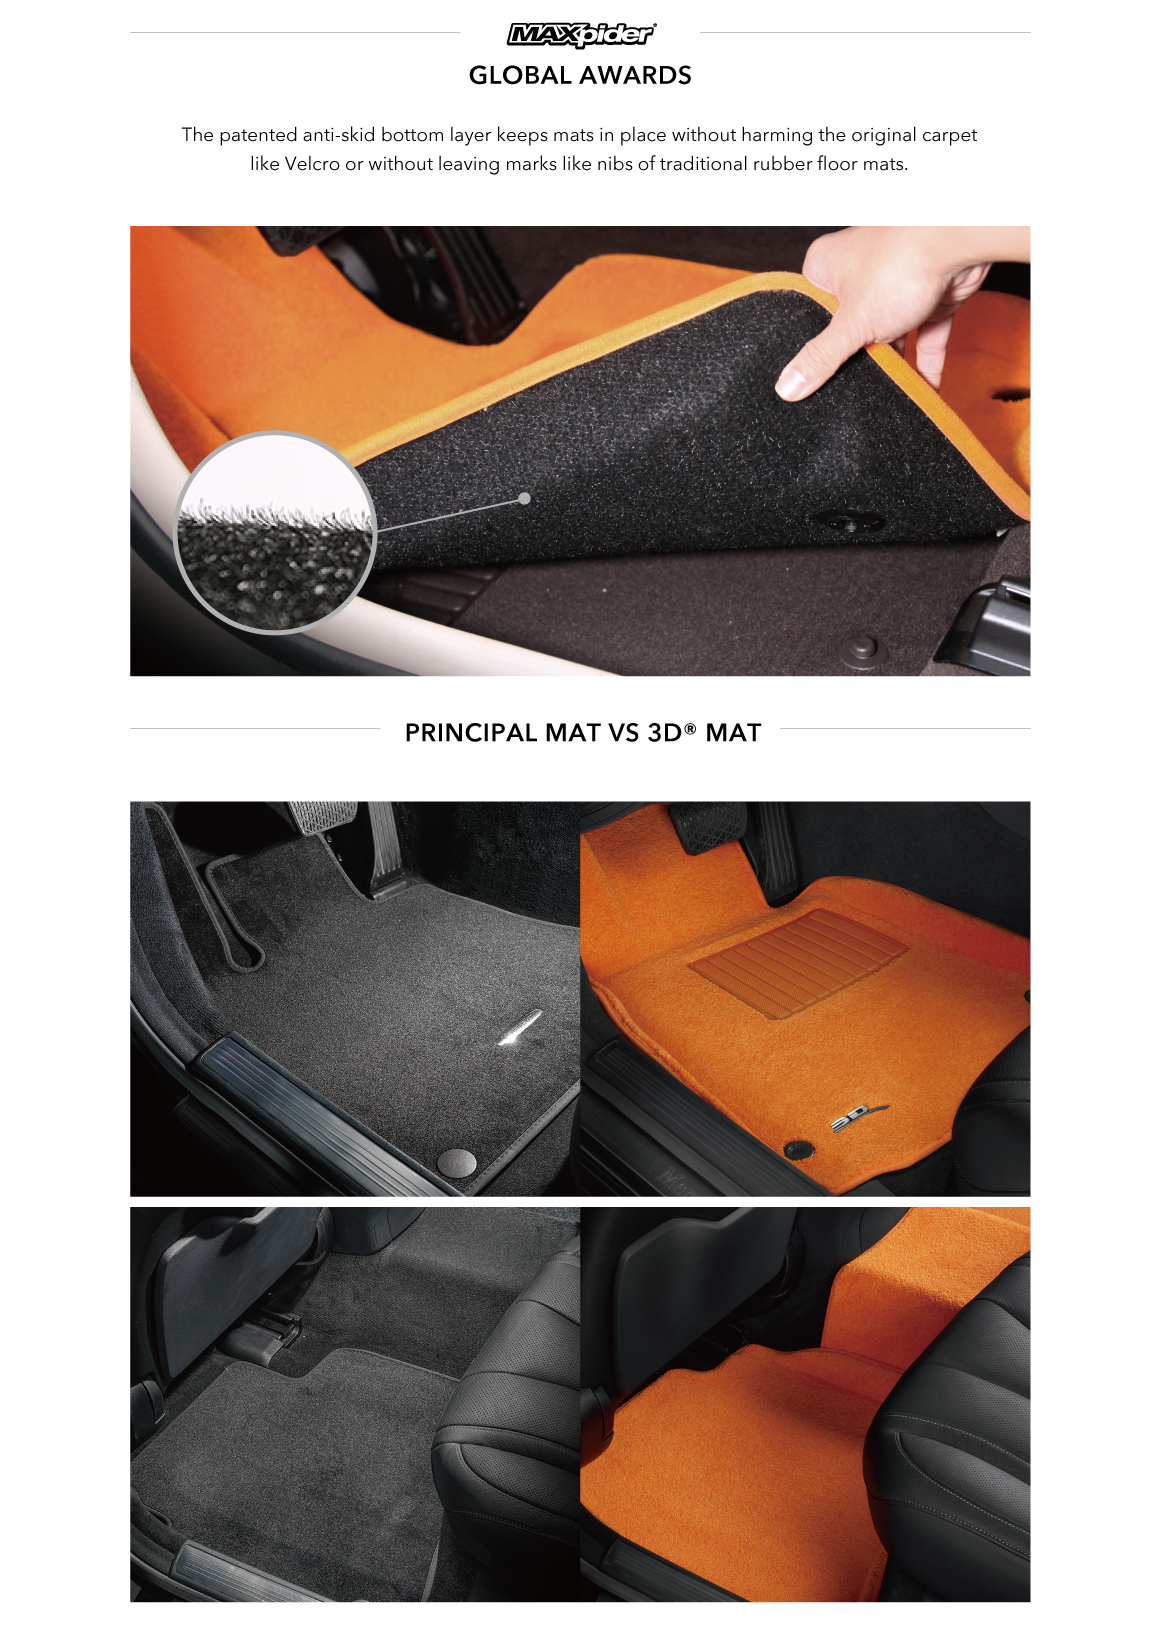 Suzuki Baleno Award Winning Car Floor Mats